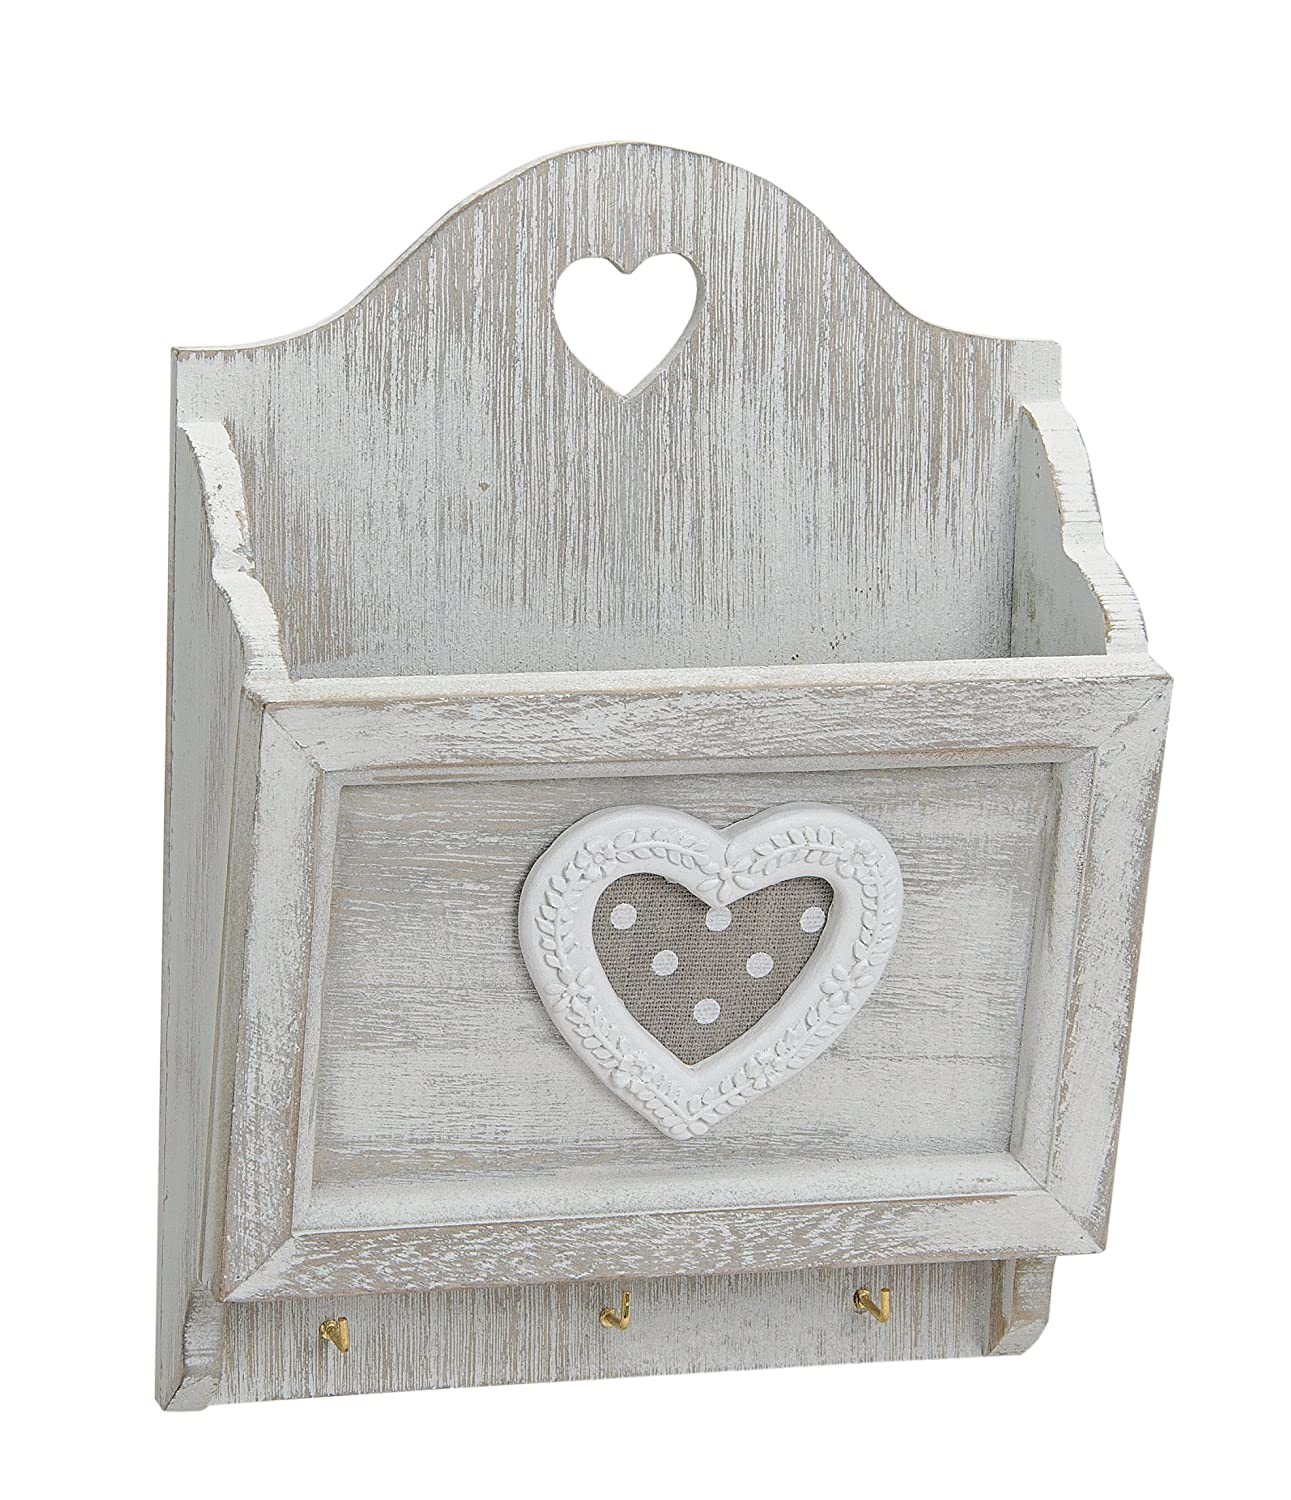 Attractive Wooden Letter Rack with Hooks for Hanging in Country House Style Key Holder no name